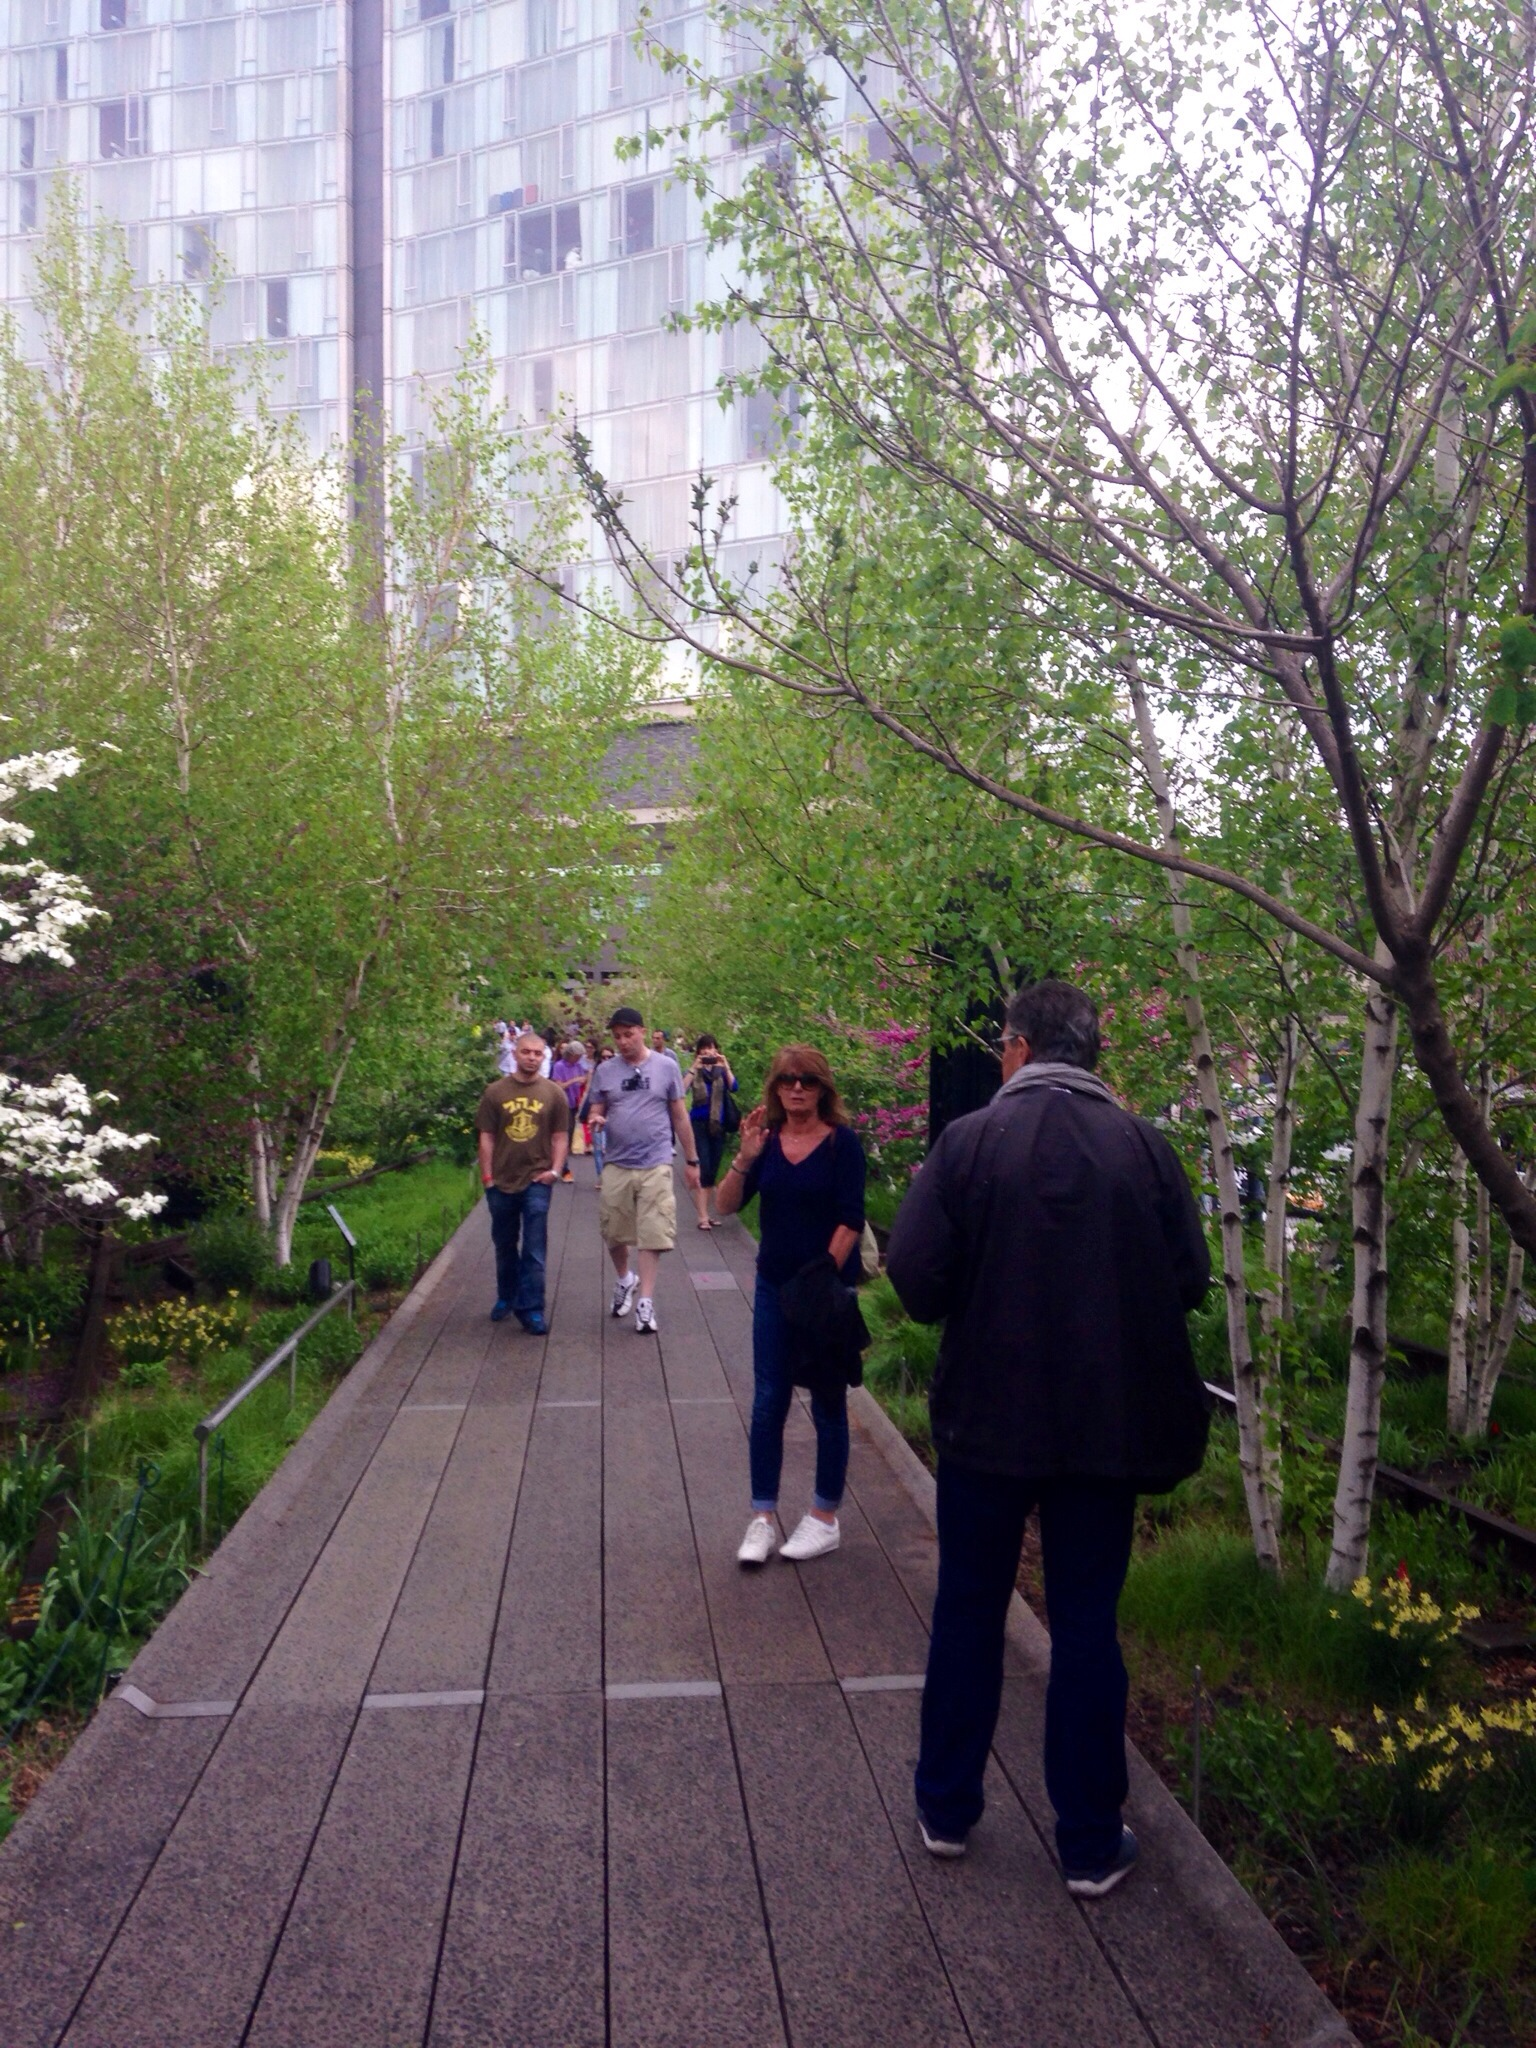 City Tip – The New York High Line